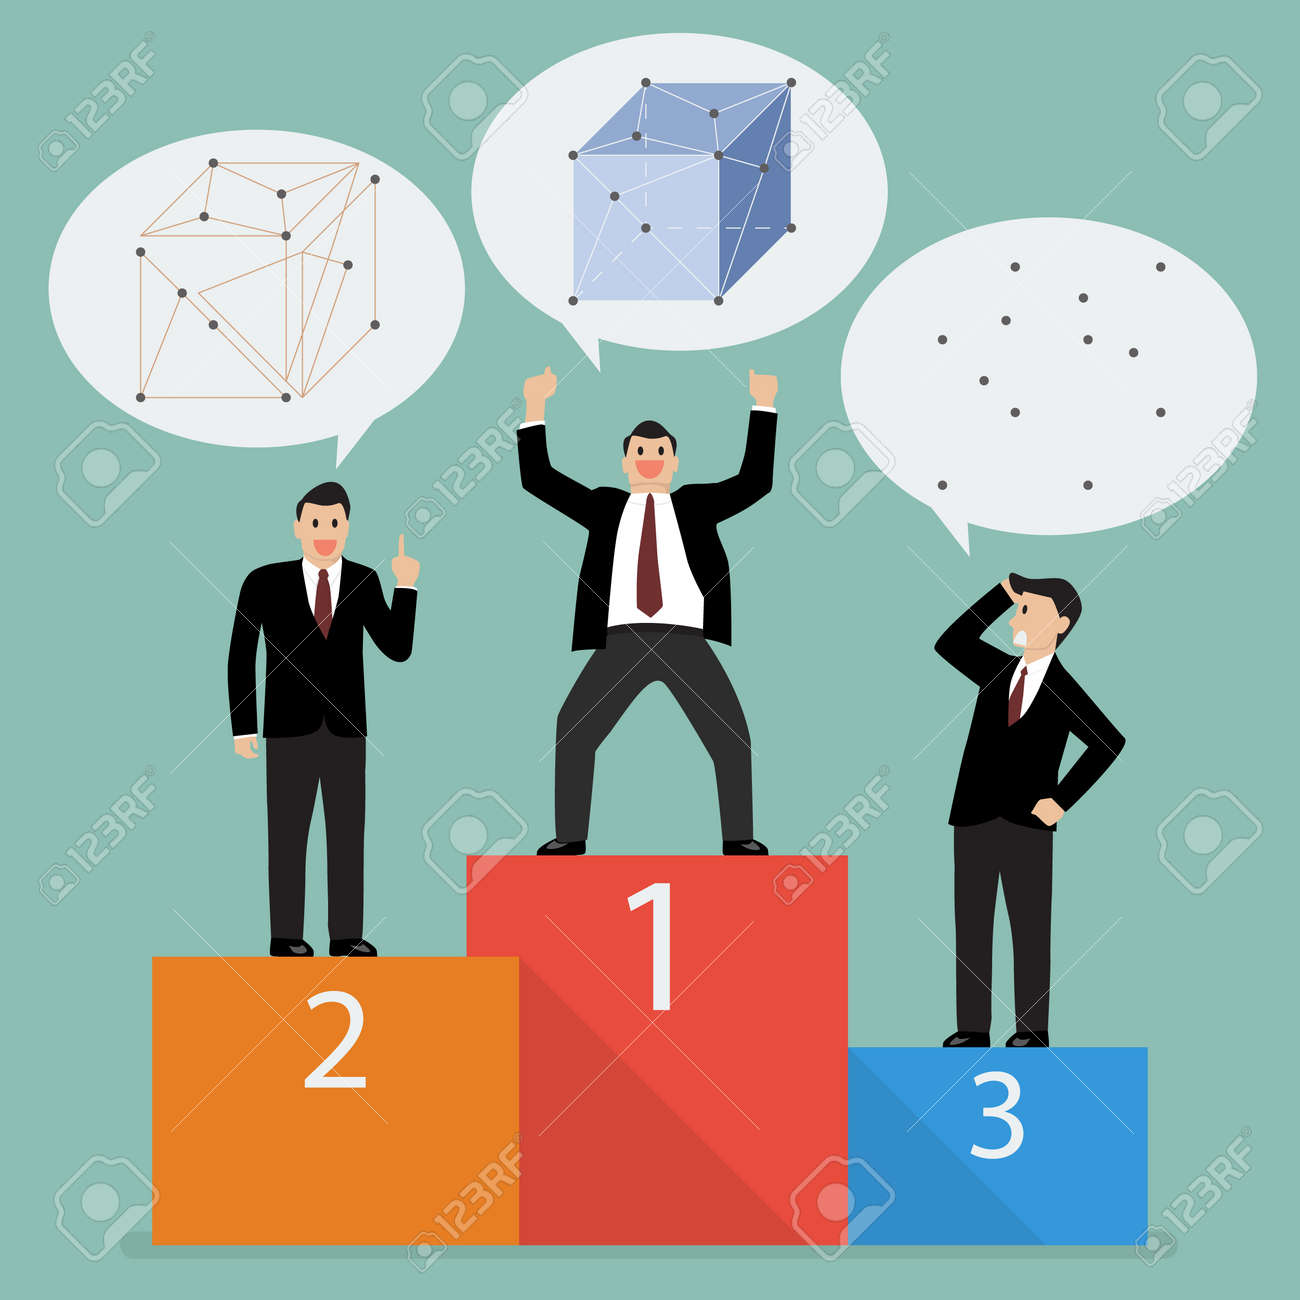 The winner is the one who can best analyze and connect information